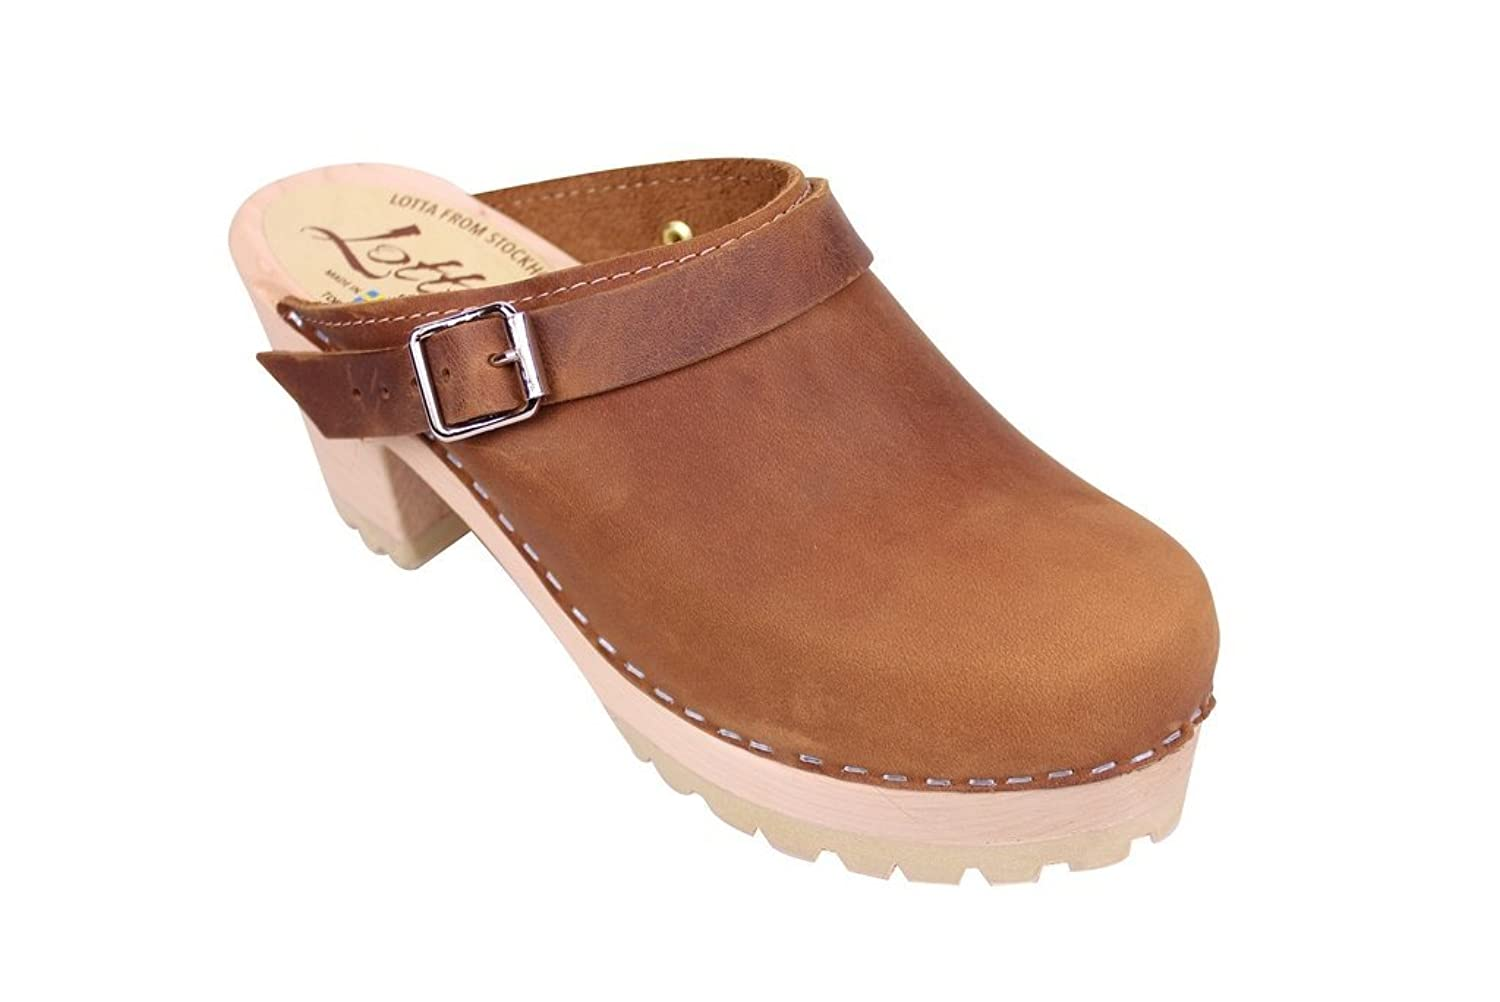 Lotta From Stockholm High Heel Tractor Sole Clog in Brown Oiled Nubuck